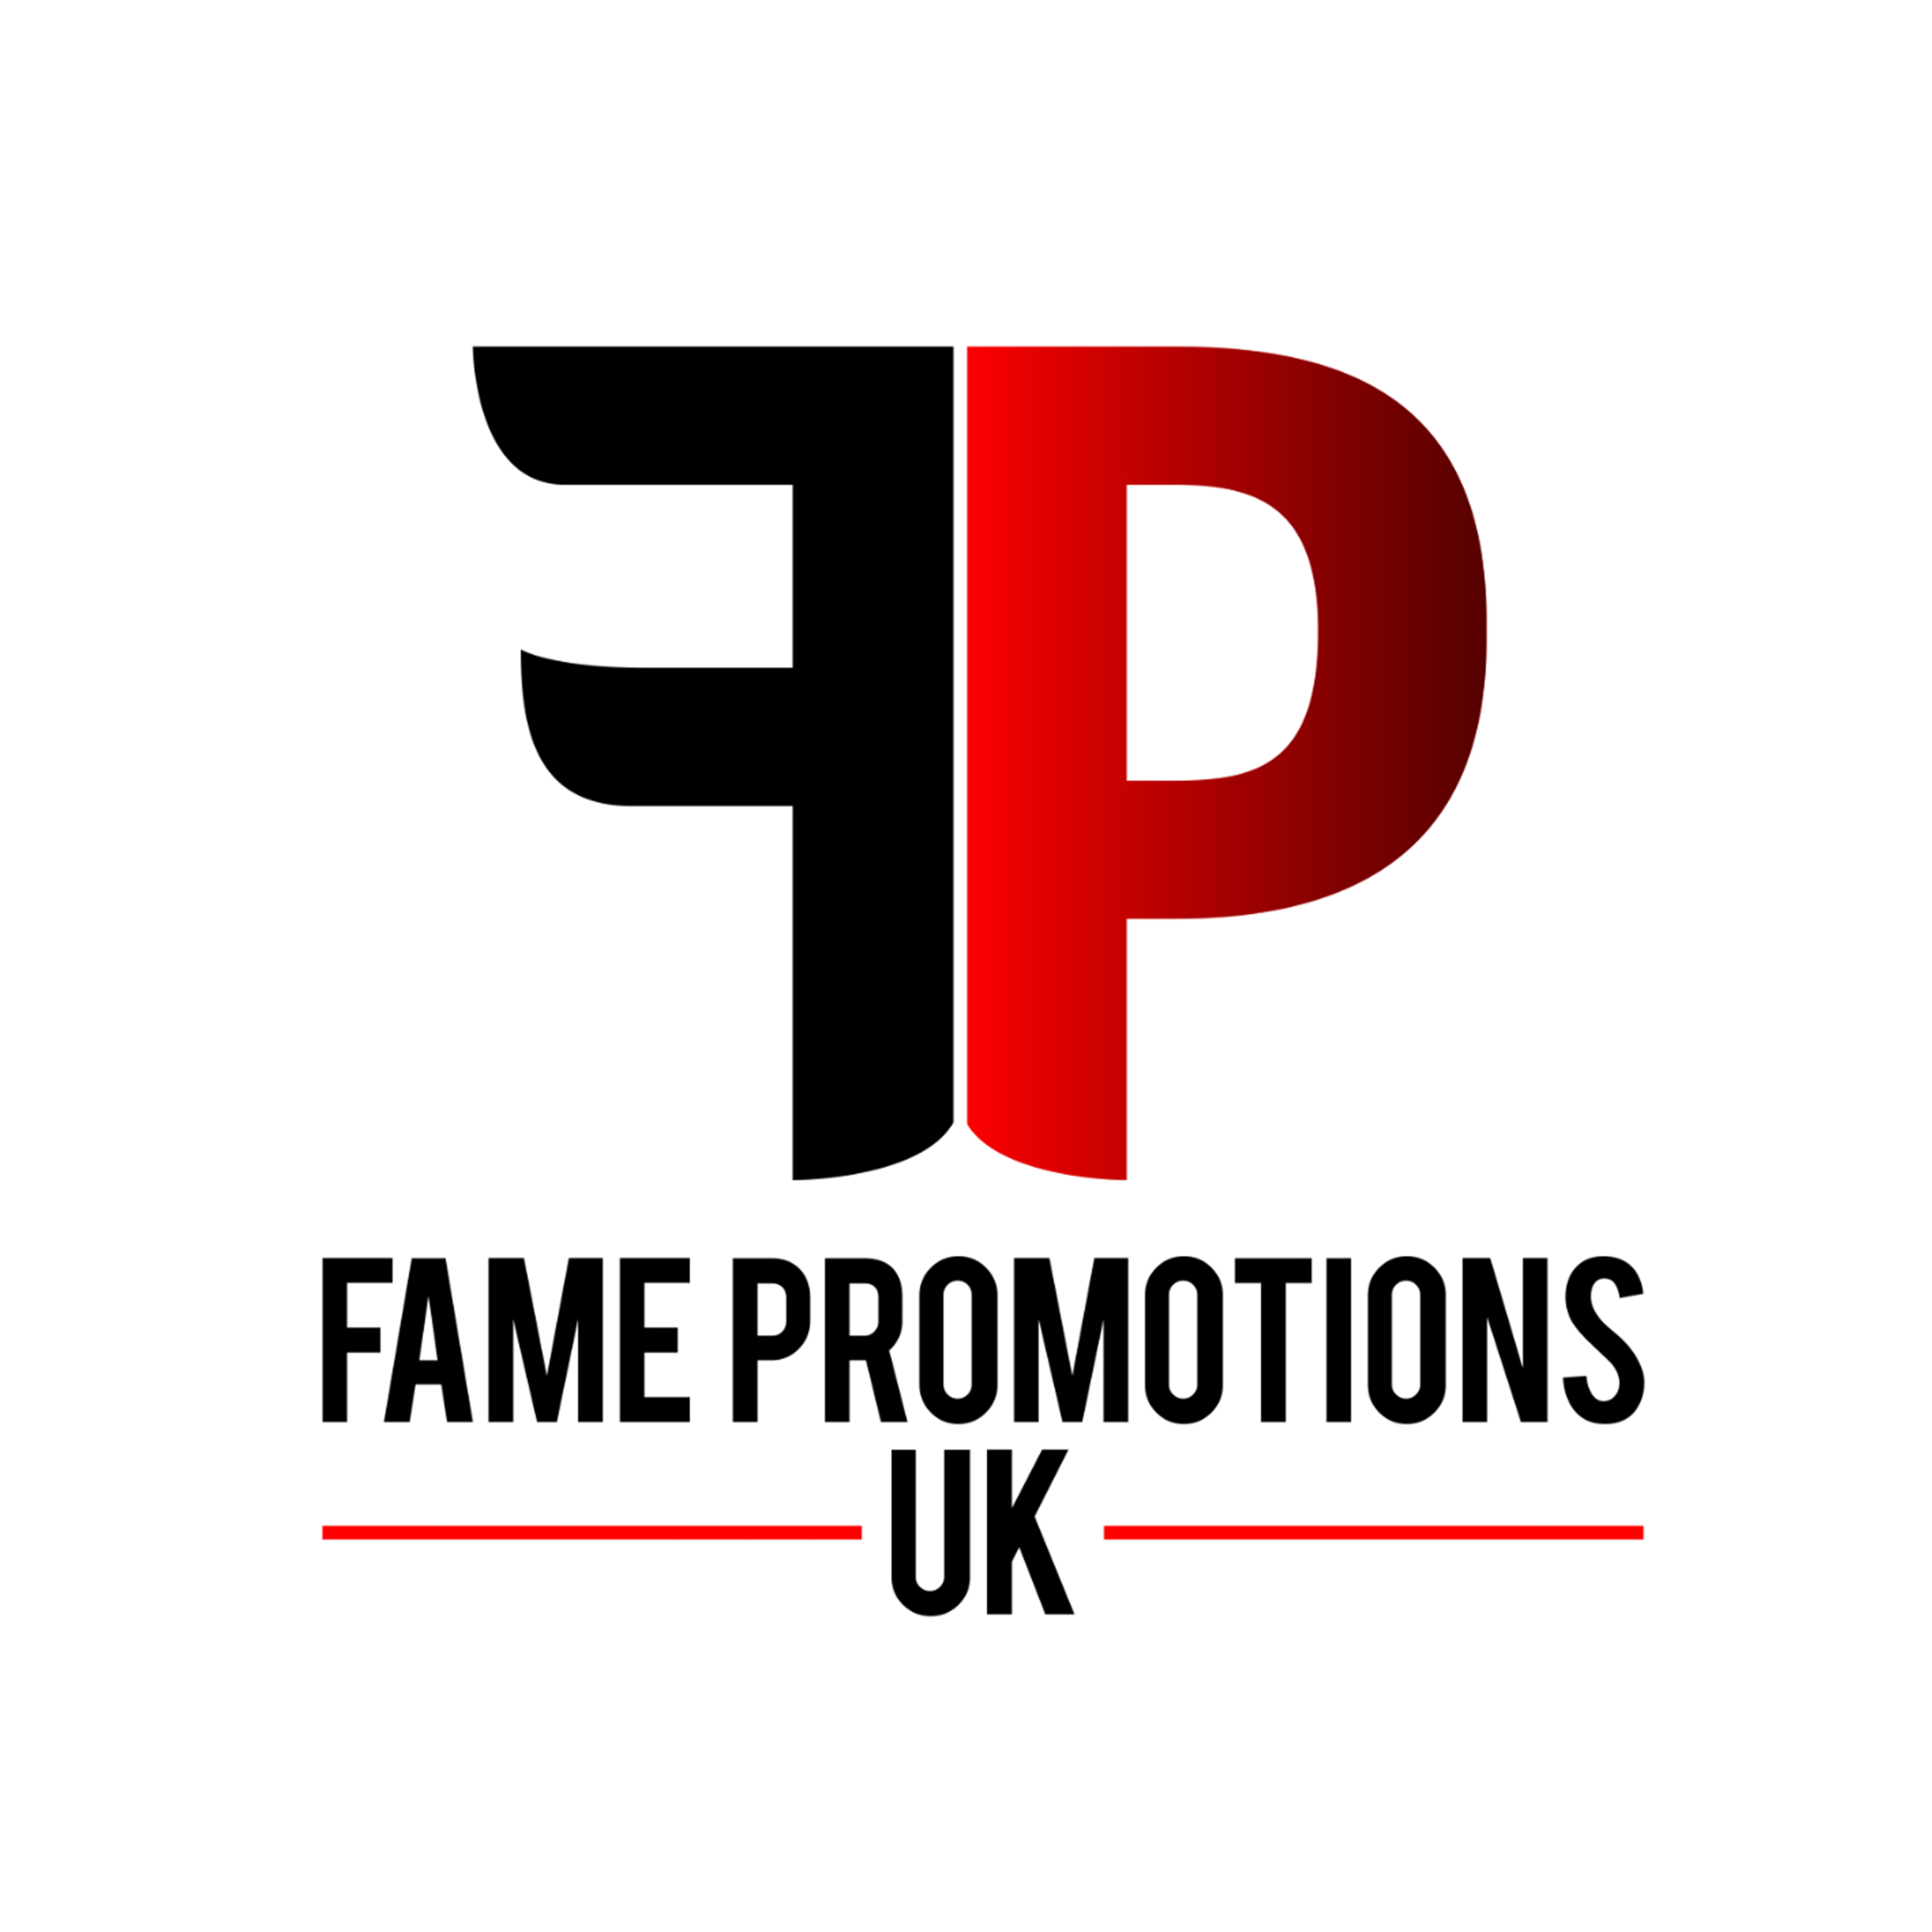 Fame Promotions UK